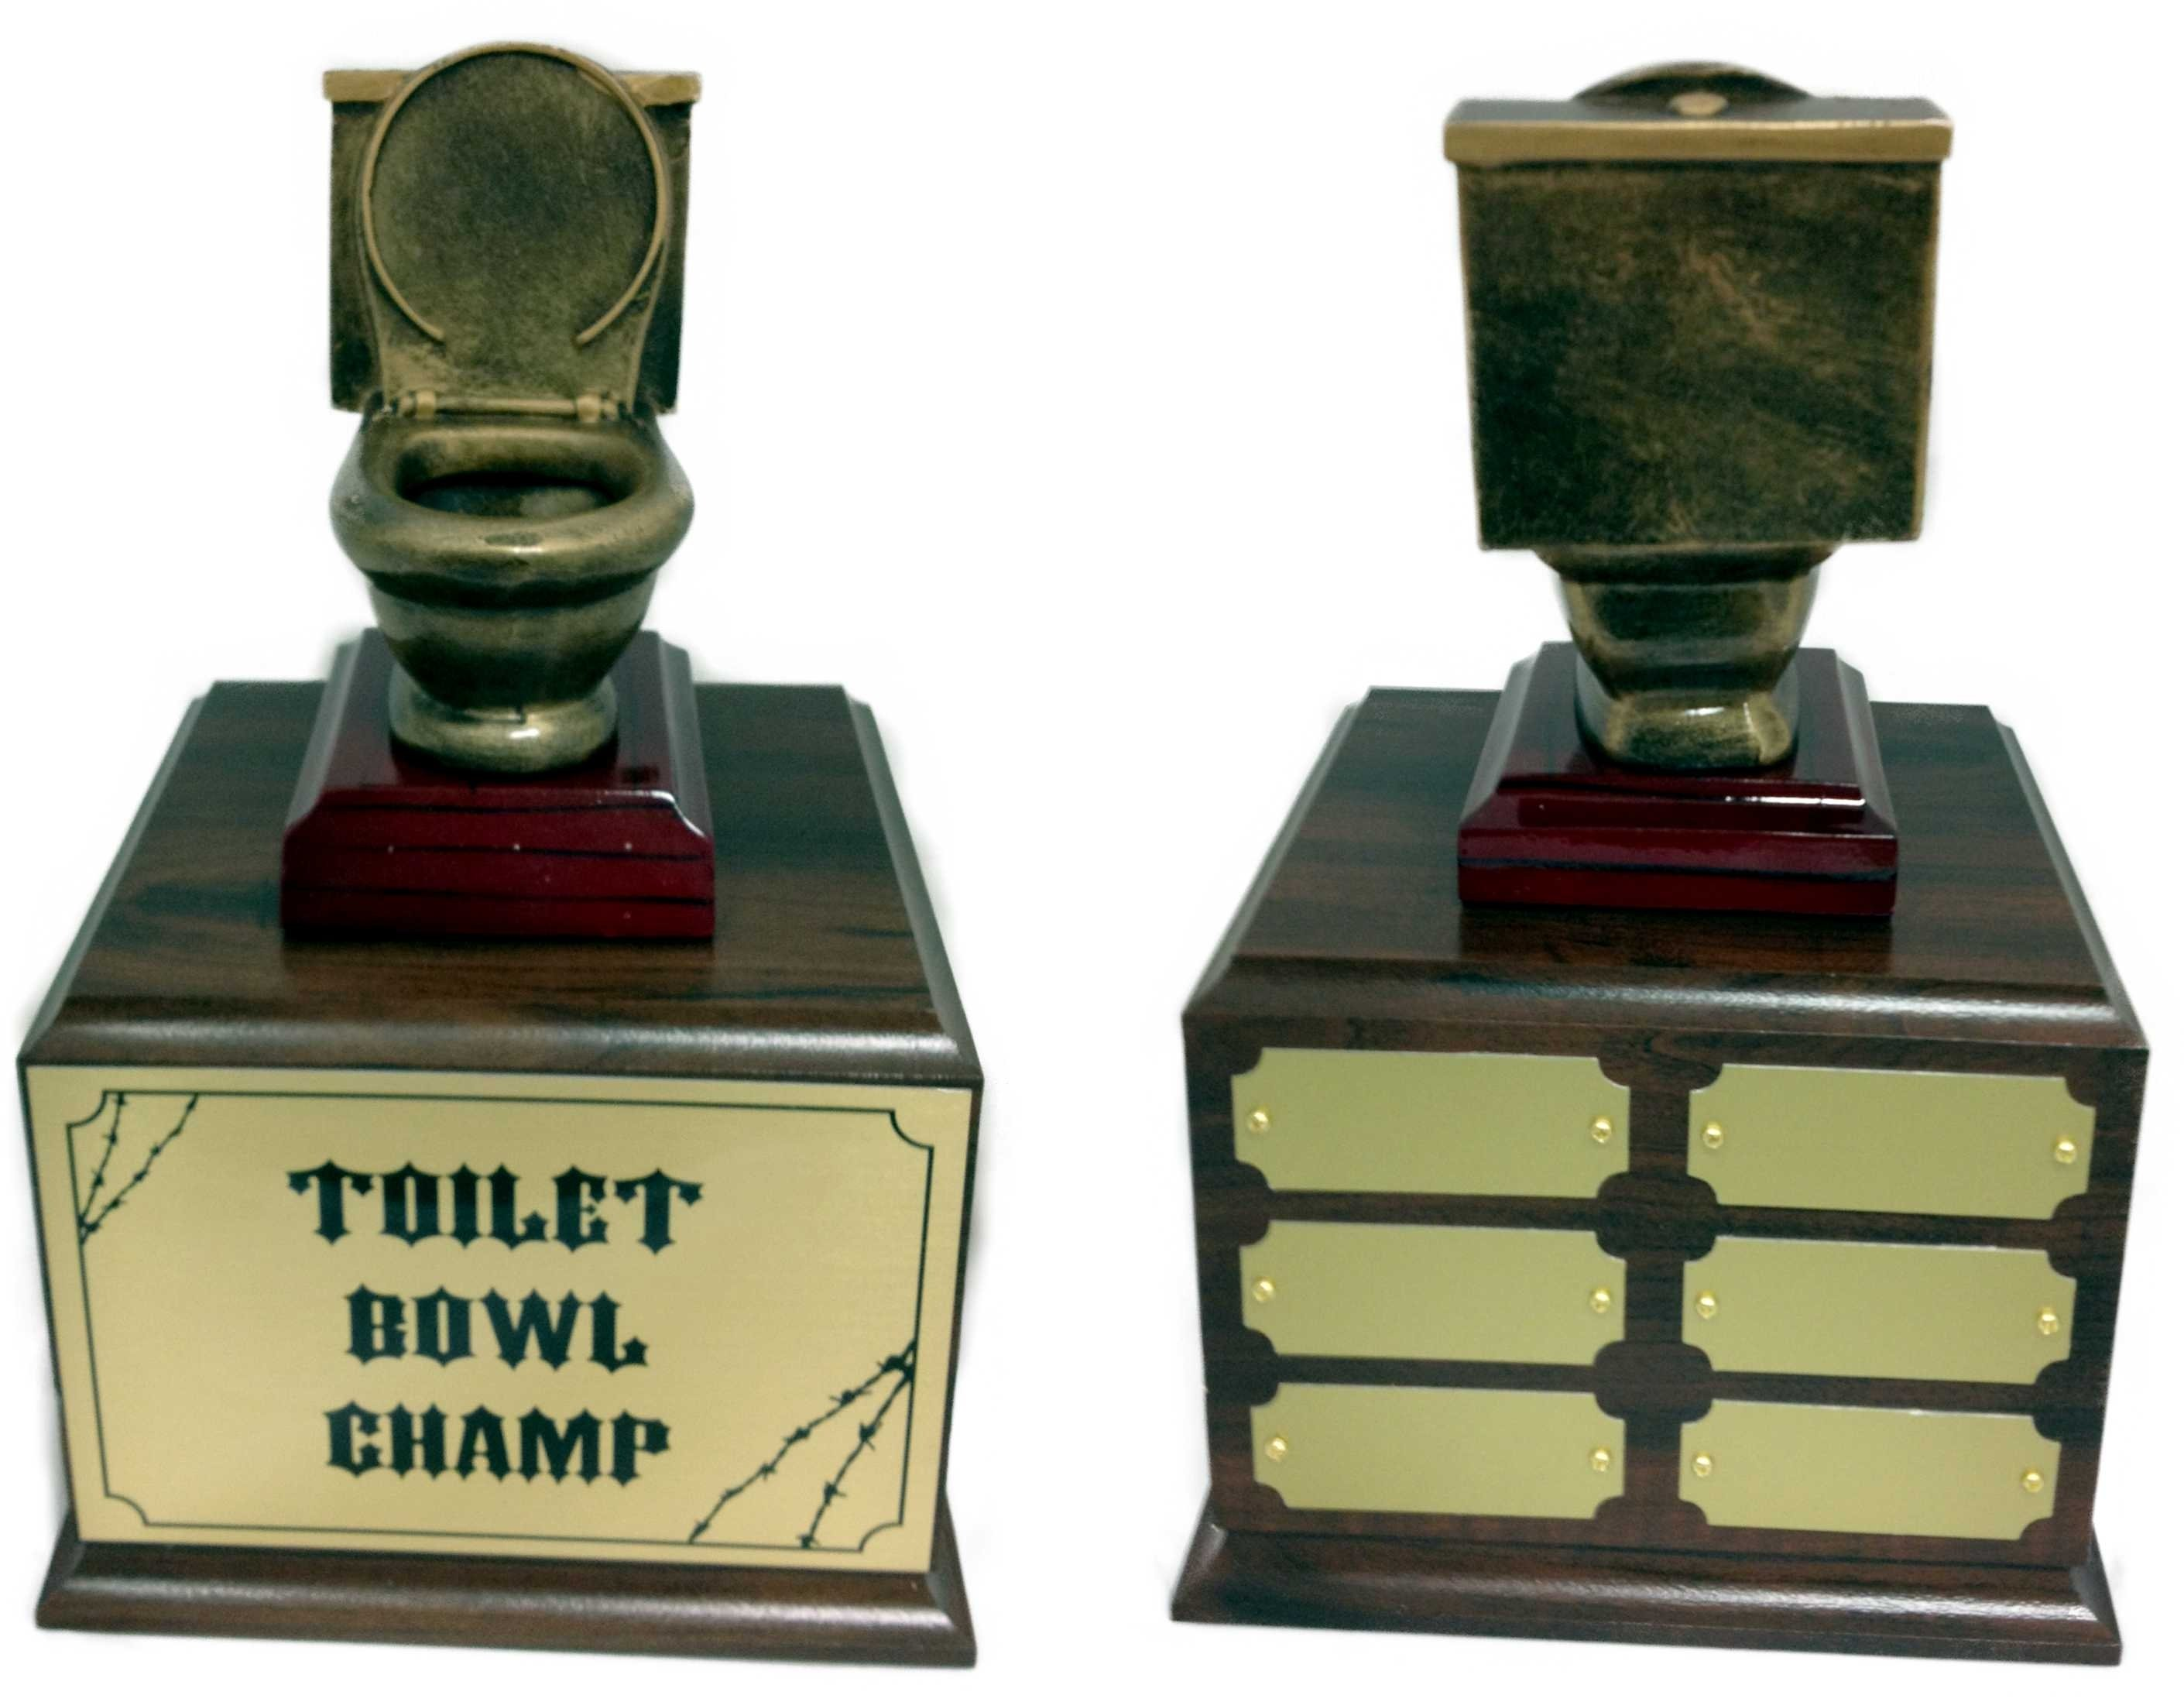 10 Most Popular Last Place Fantasy Football Ideas best cool toilet bowl trophies 9 11480 2020